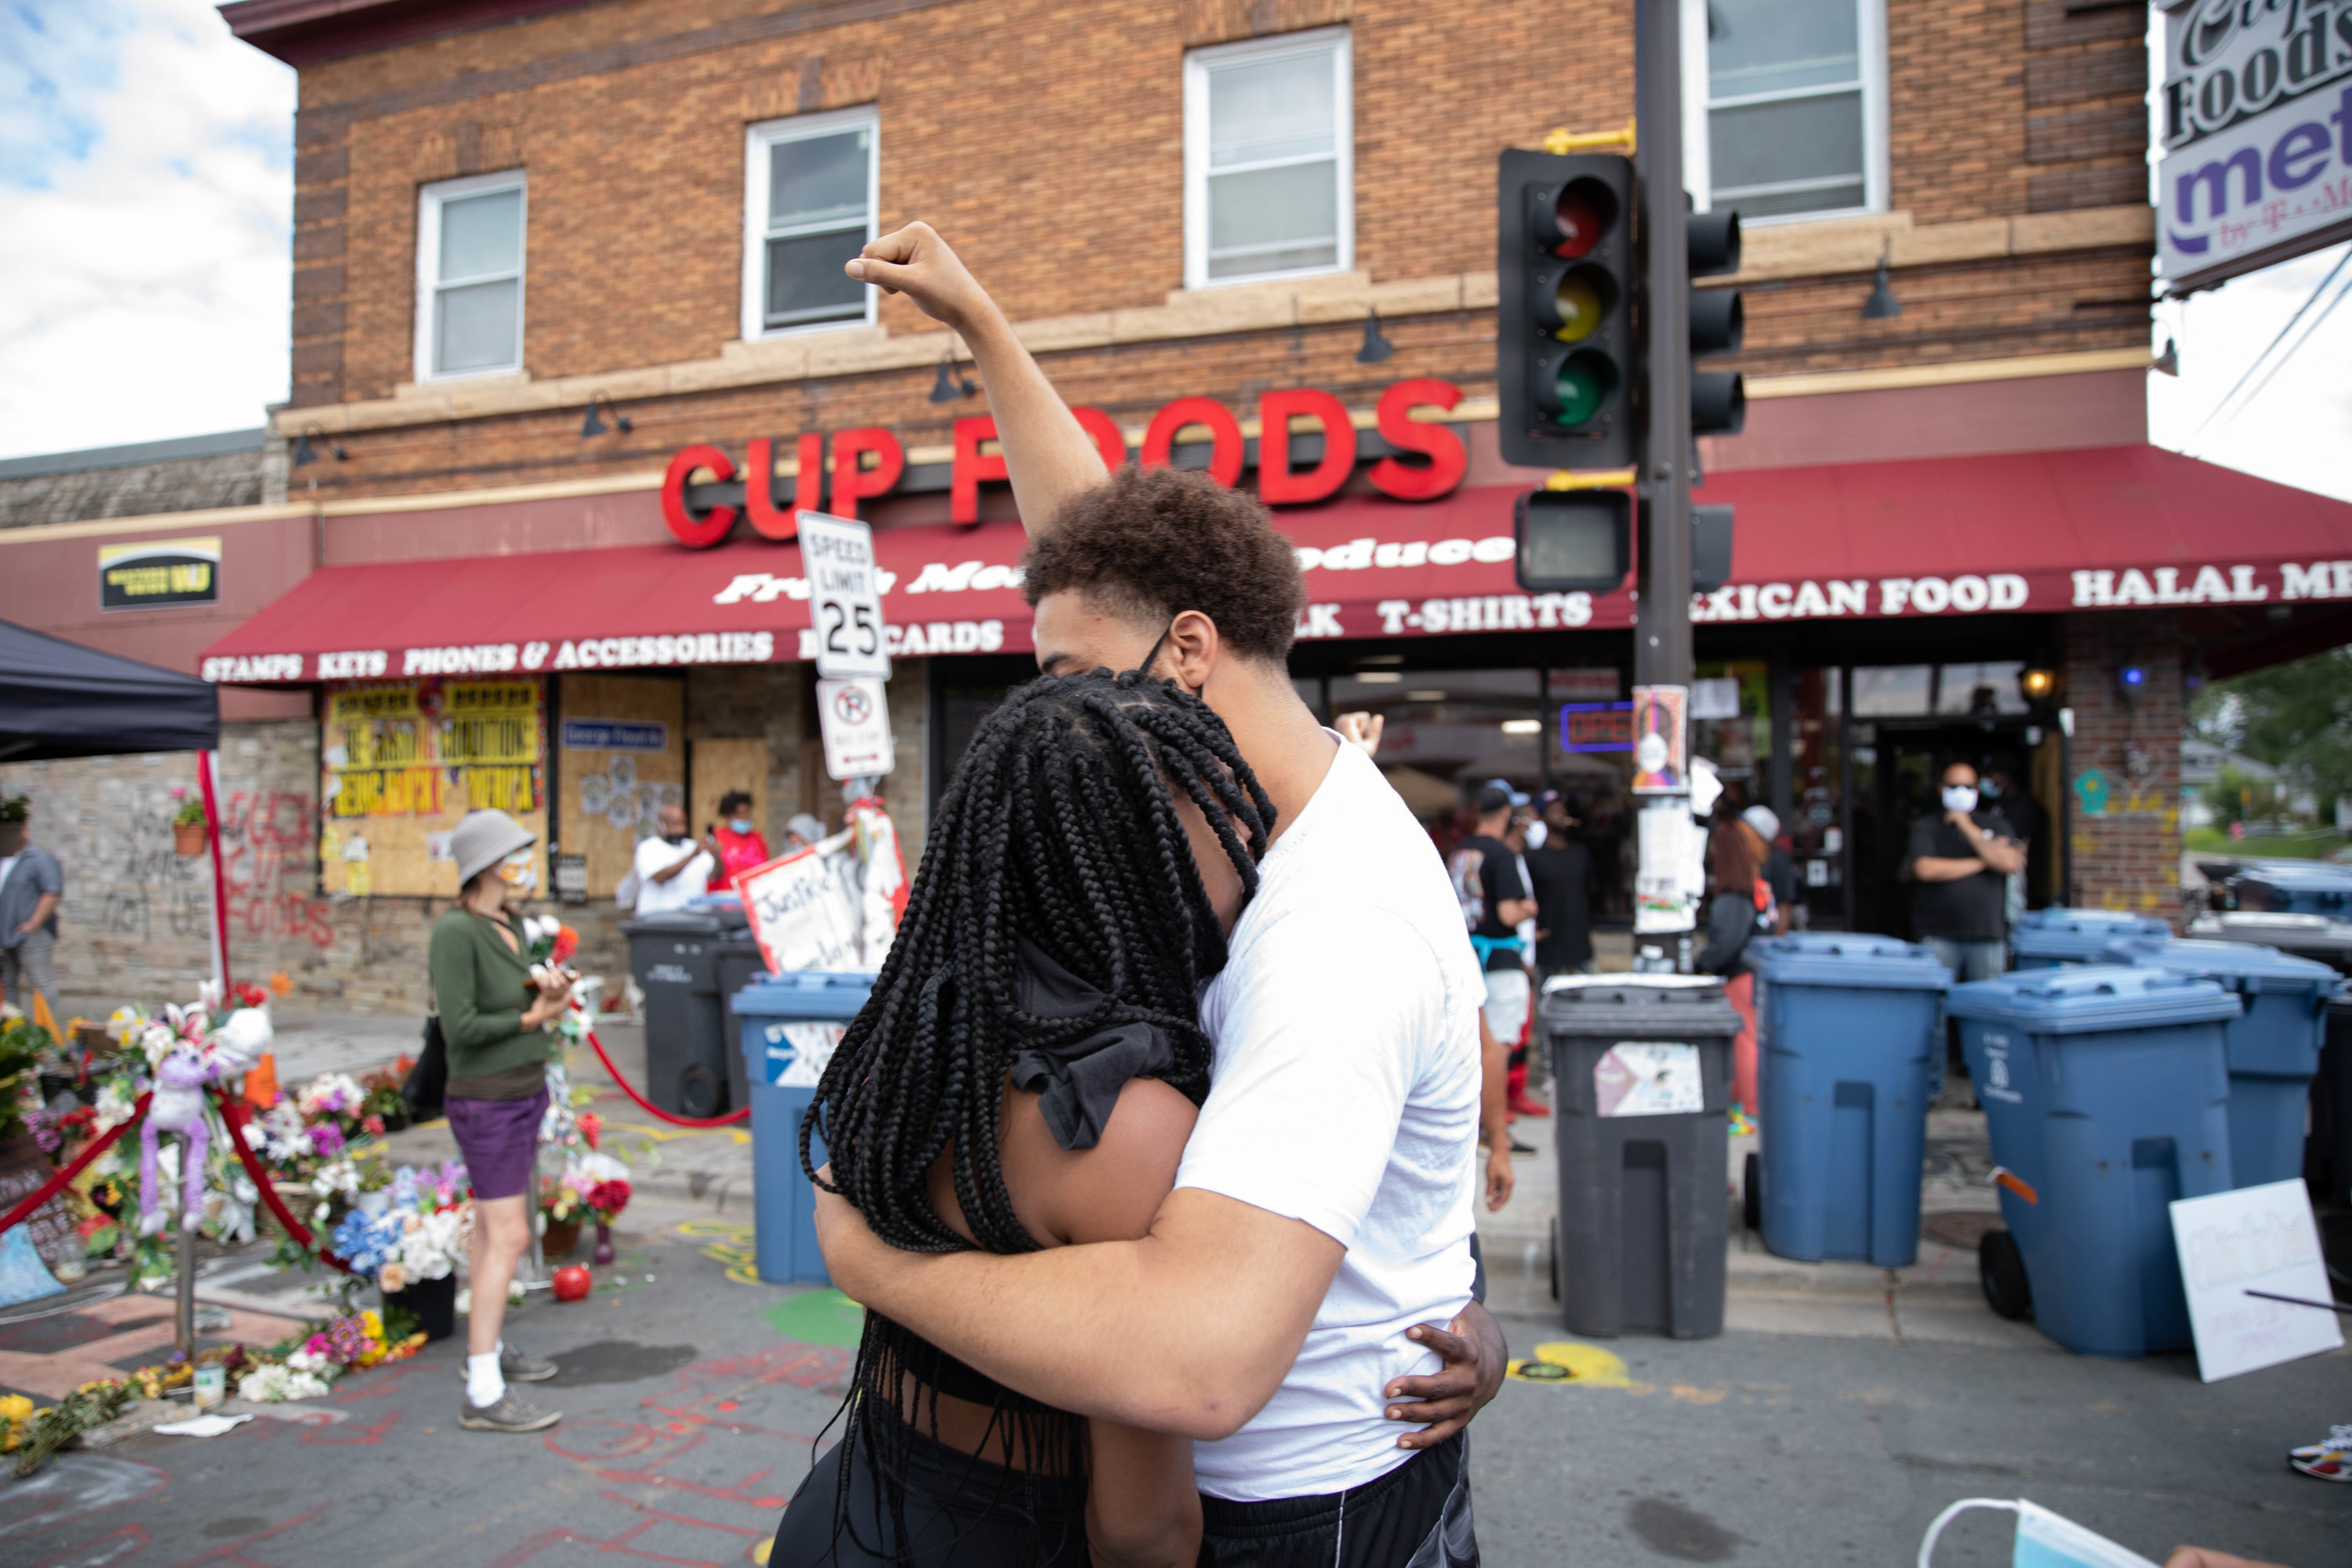 A woman with braids hugs a man raising his fist in front of a grocery store, stoplights, and blue recycling bins.